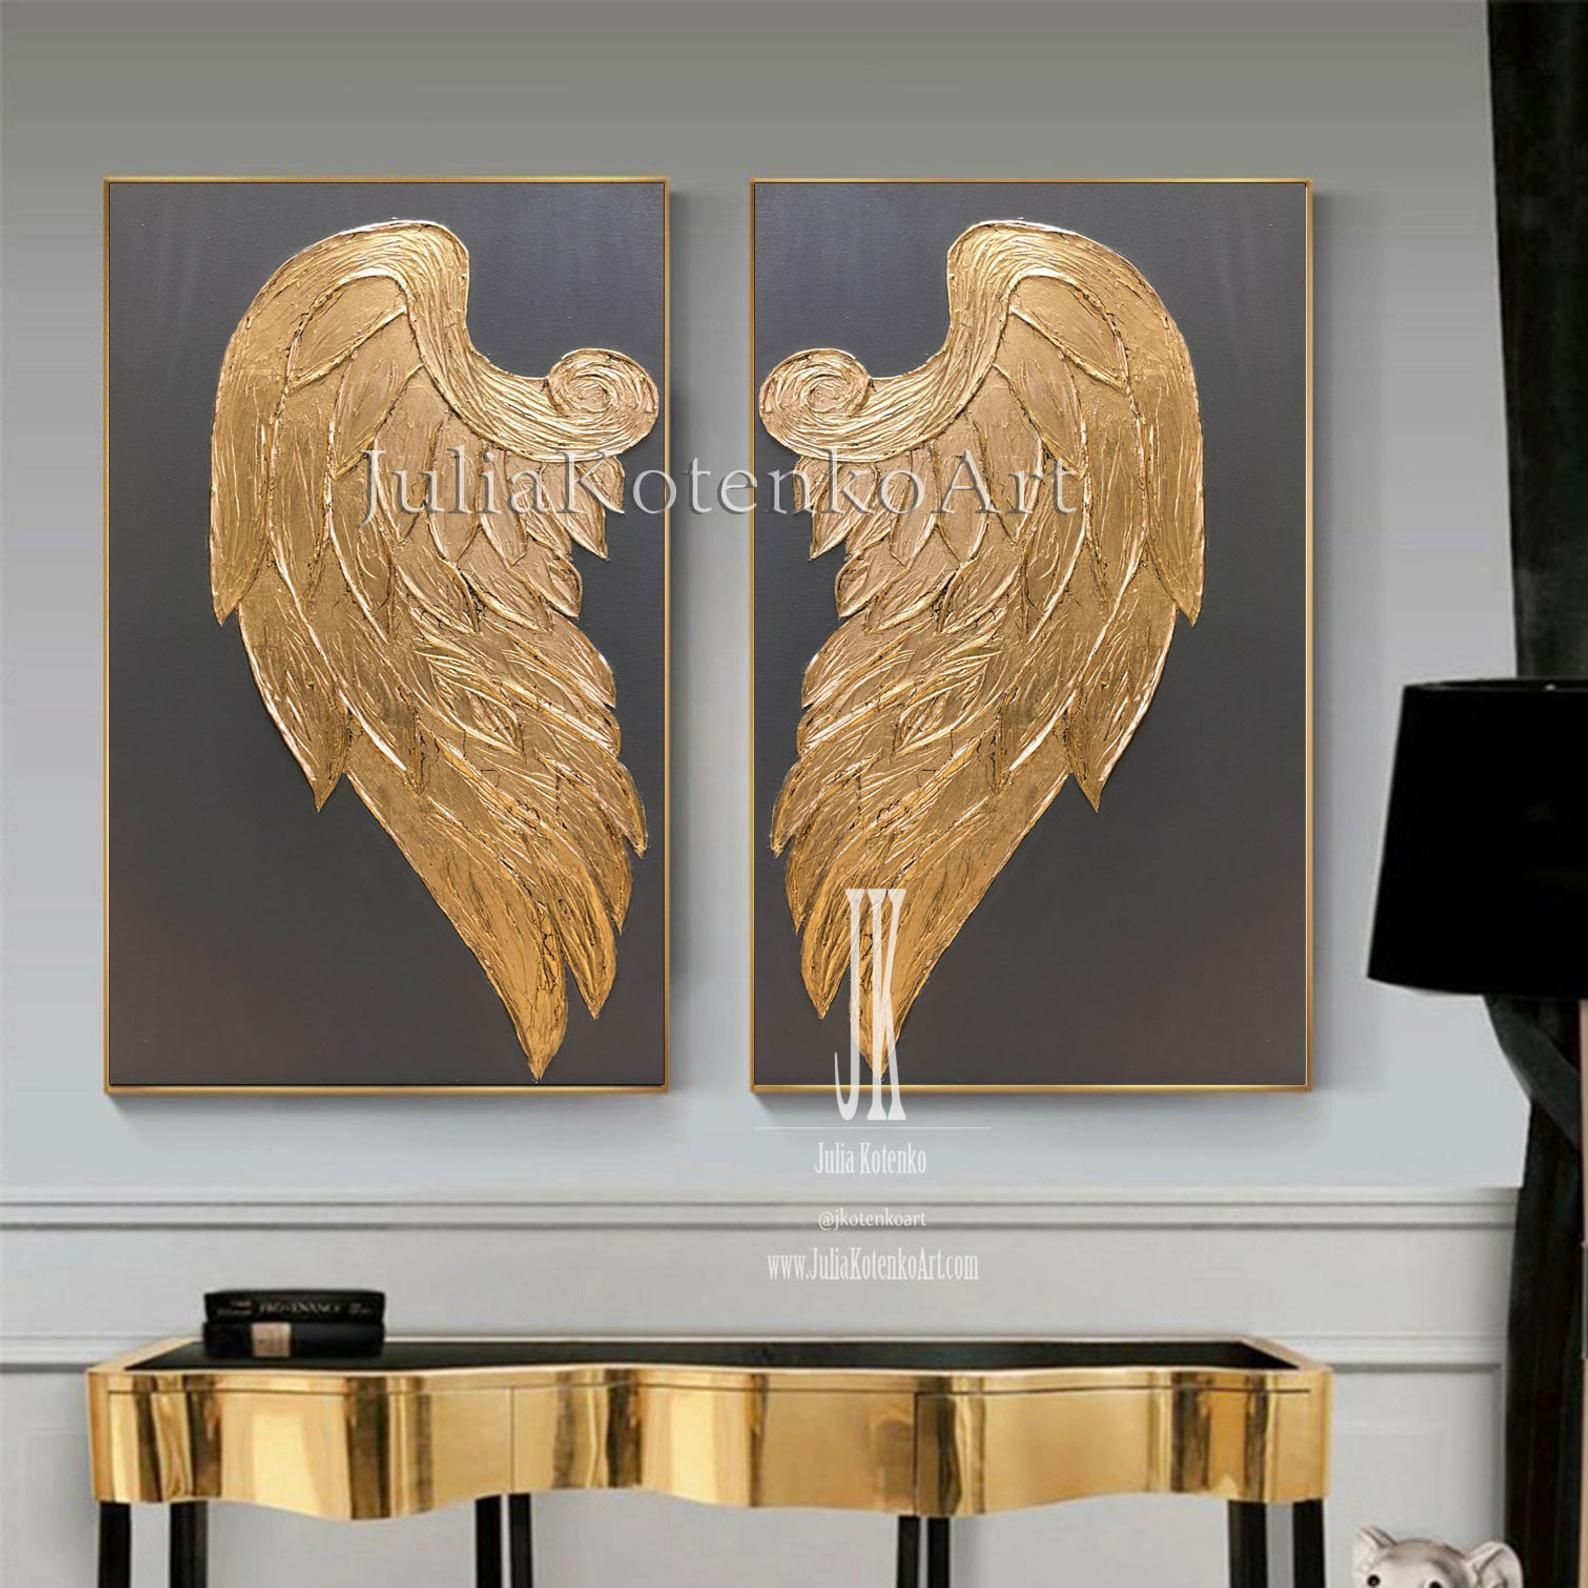 Large Angel Wings Wall Decor Gold Leaf Painting Set Of 2 Etsy In 2020 Angel Wings Wall Art Gold Leaf Painting Angel Wings Wall Decor